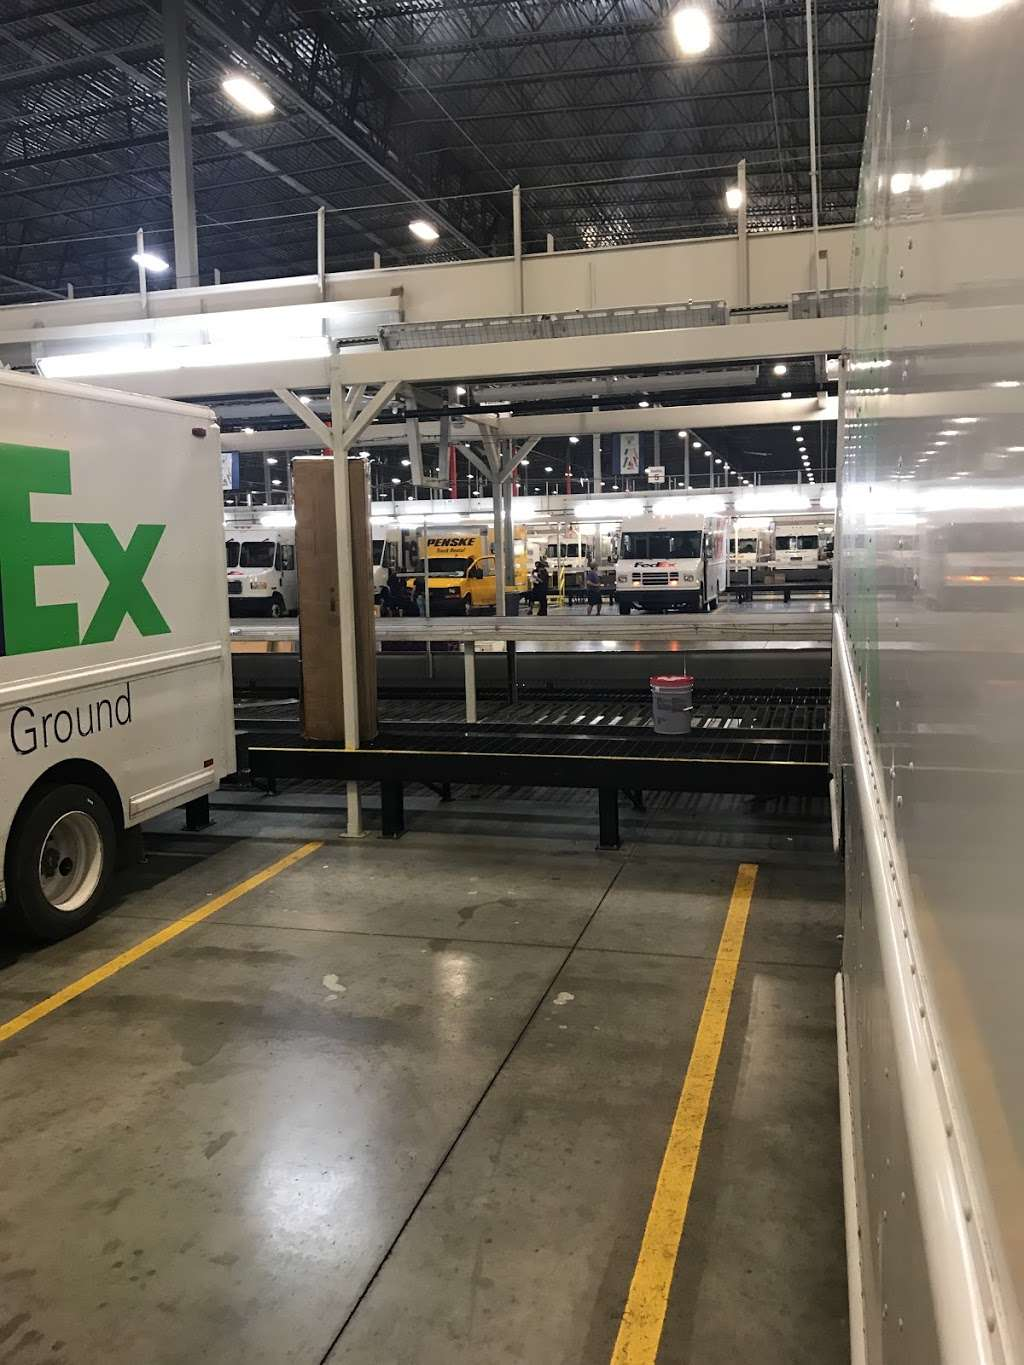 FedEx Ground - moving company  | Photo 3 of 10 | Address: 5000 North Ridge Trail, Davenport, FL 33897, USA | Phone: (800) 463-3339